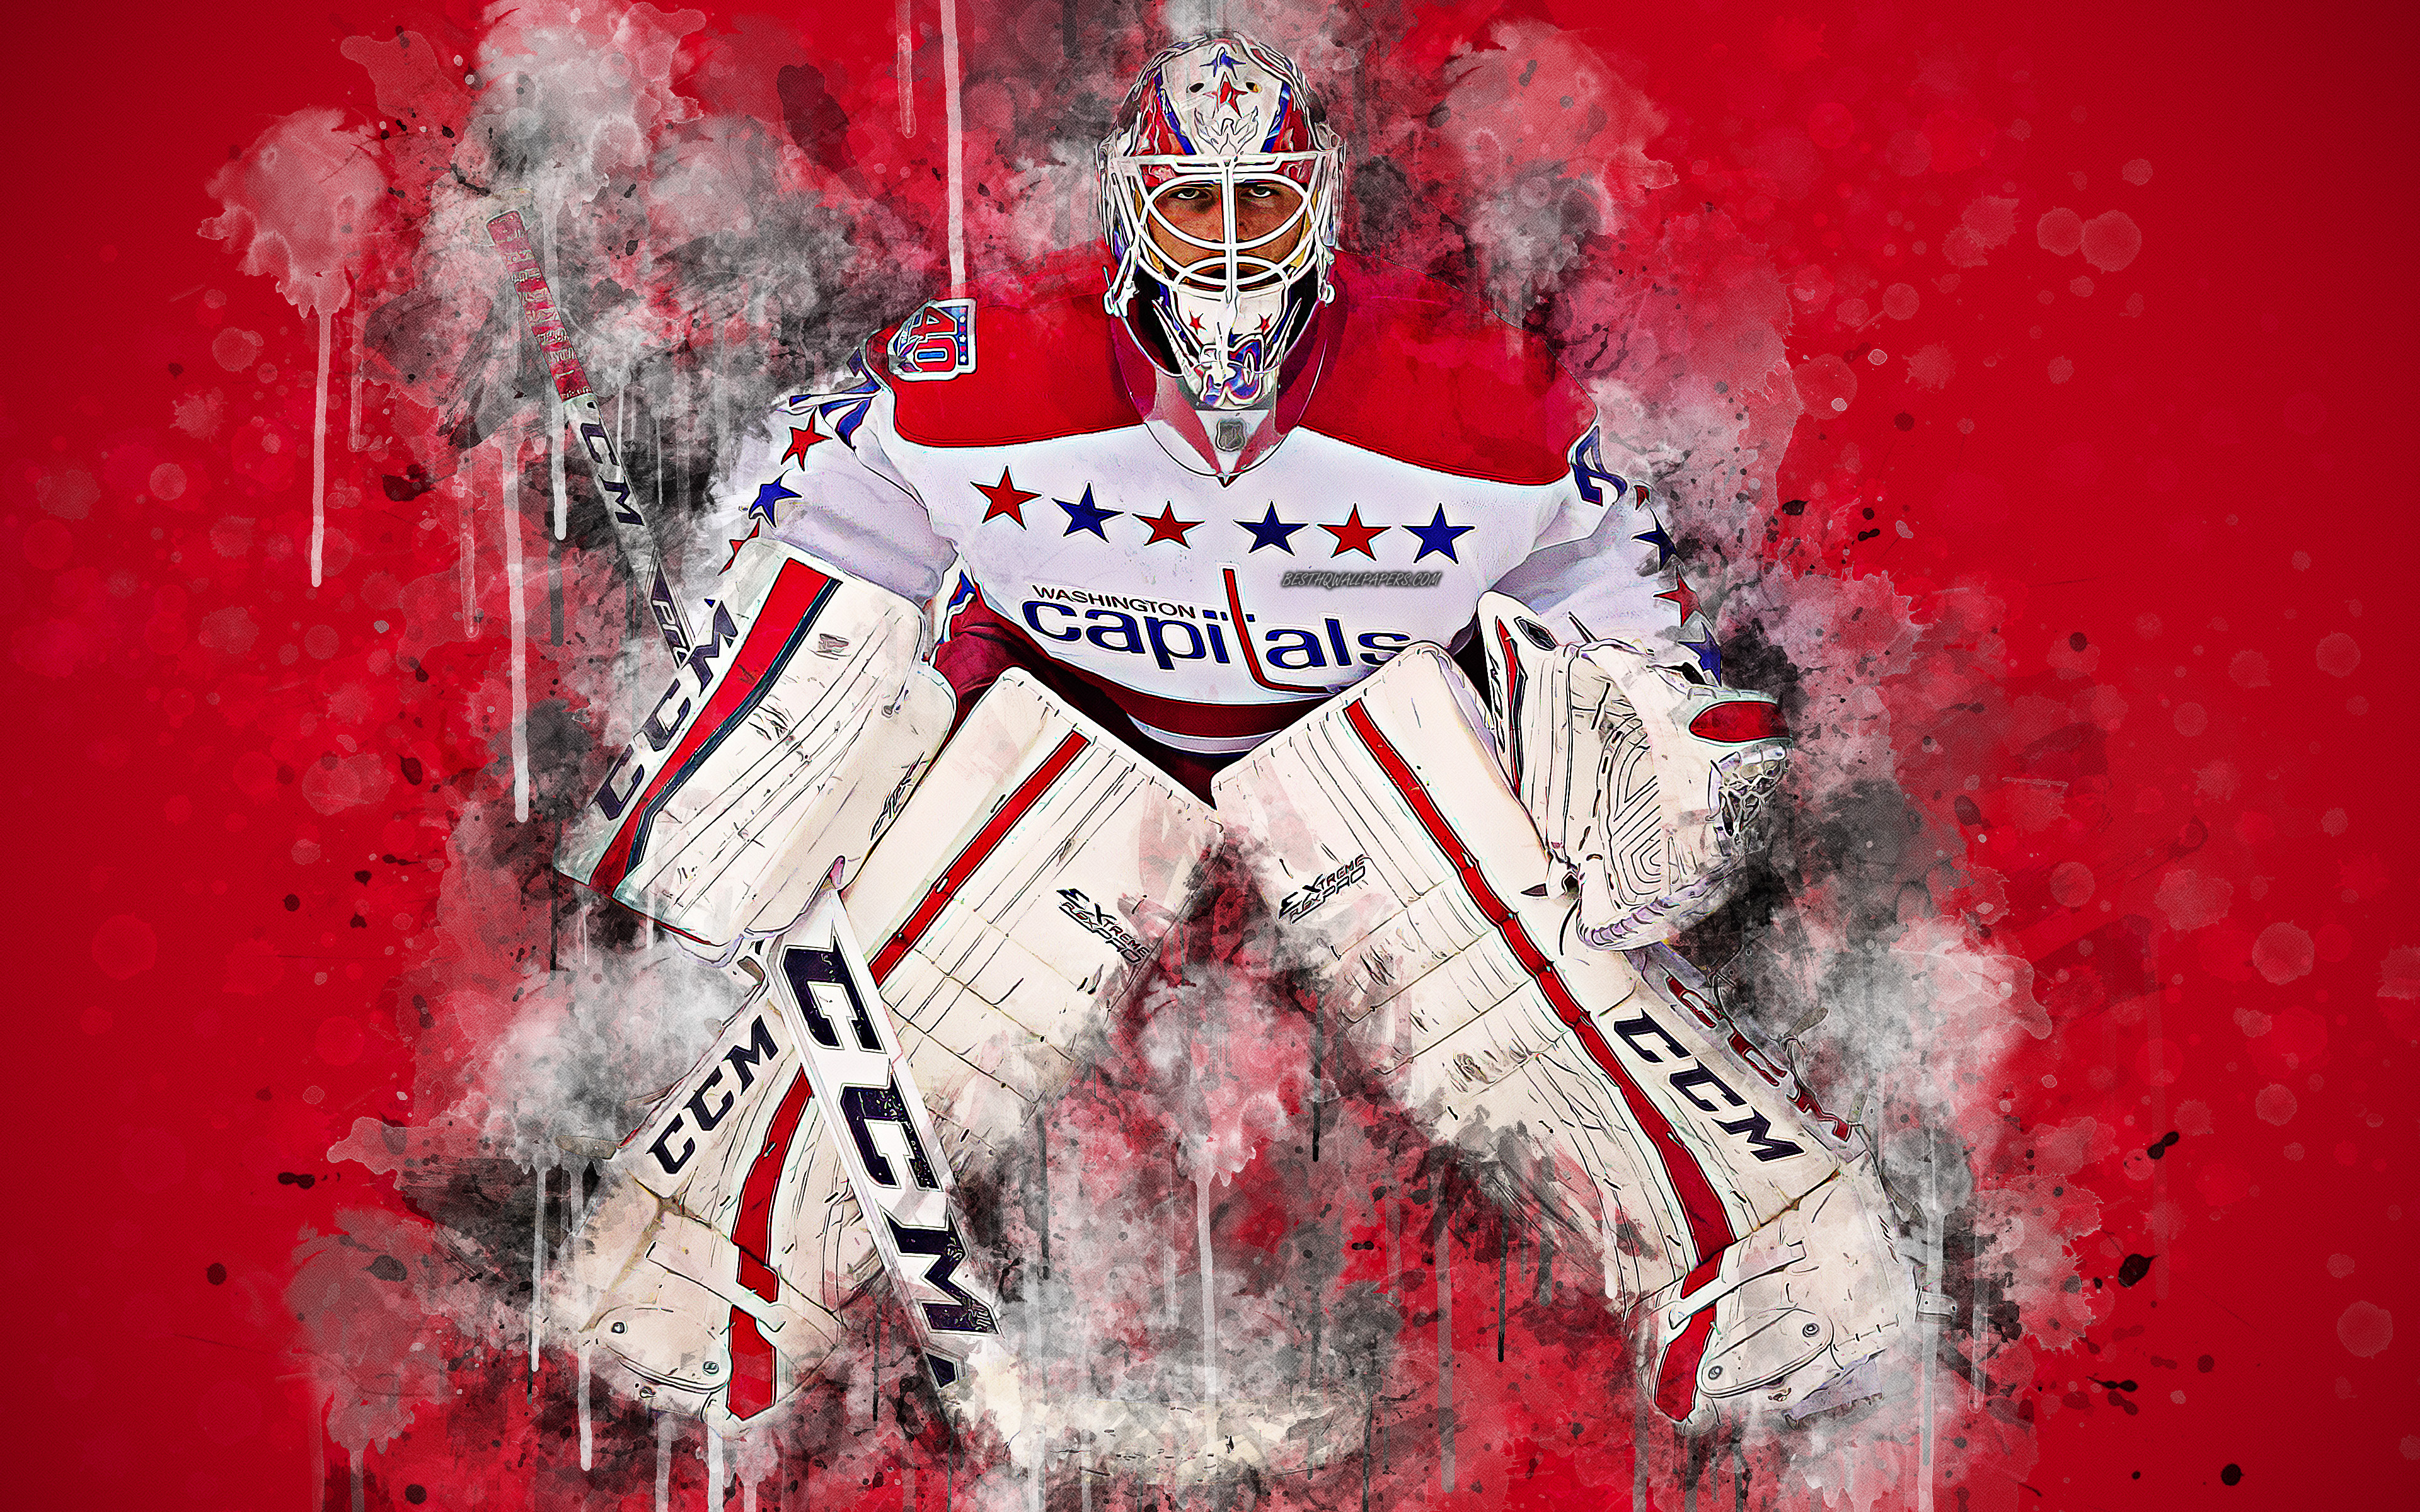 Download wallpapers Braden Holtby 4k Canadian hockey player 3840x2400